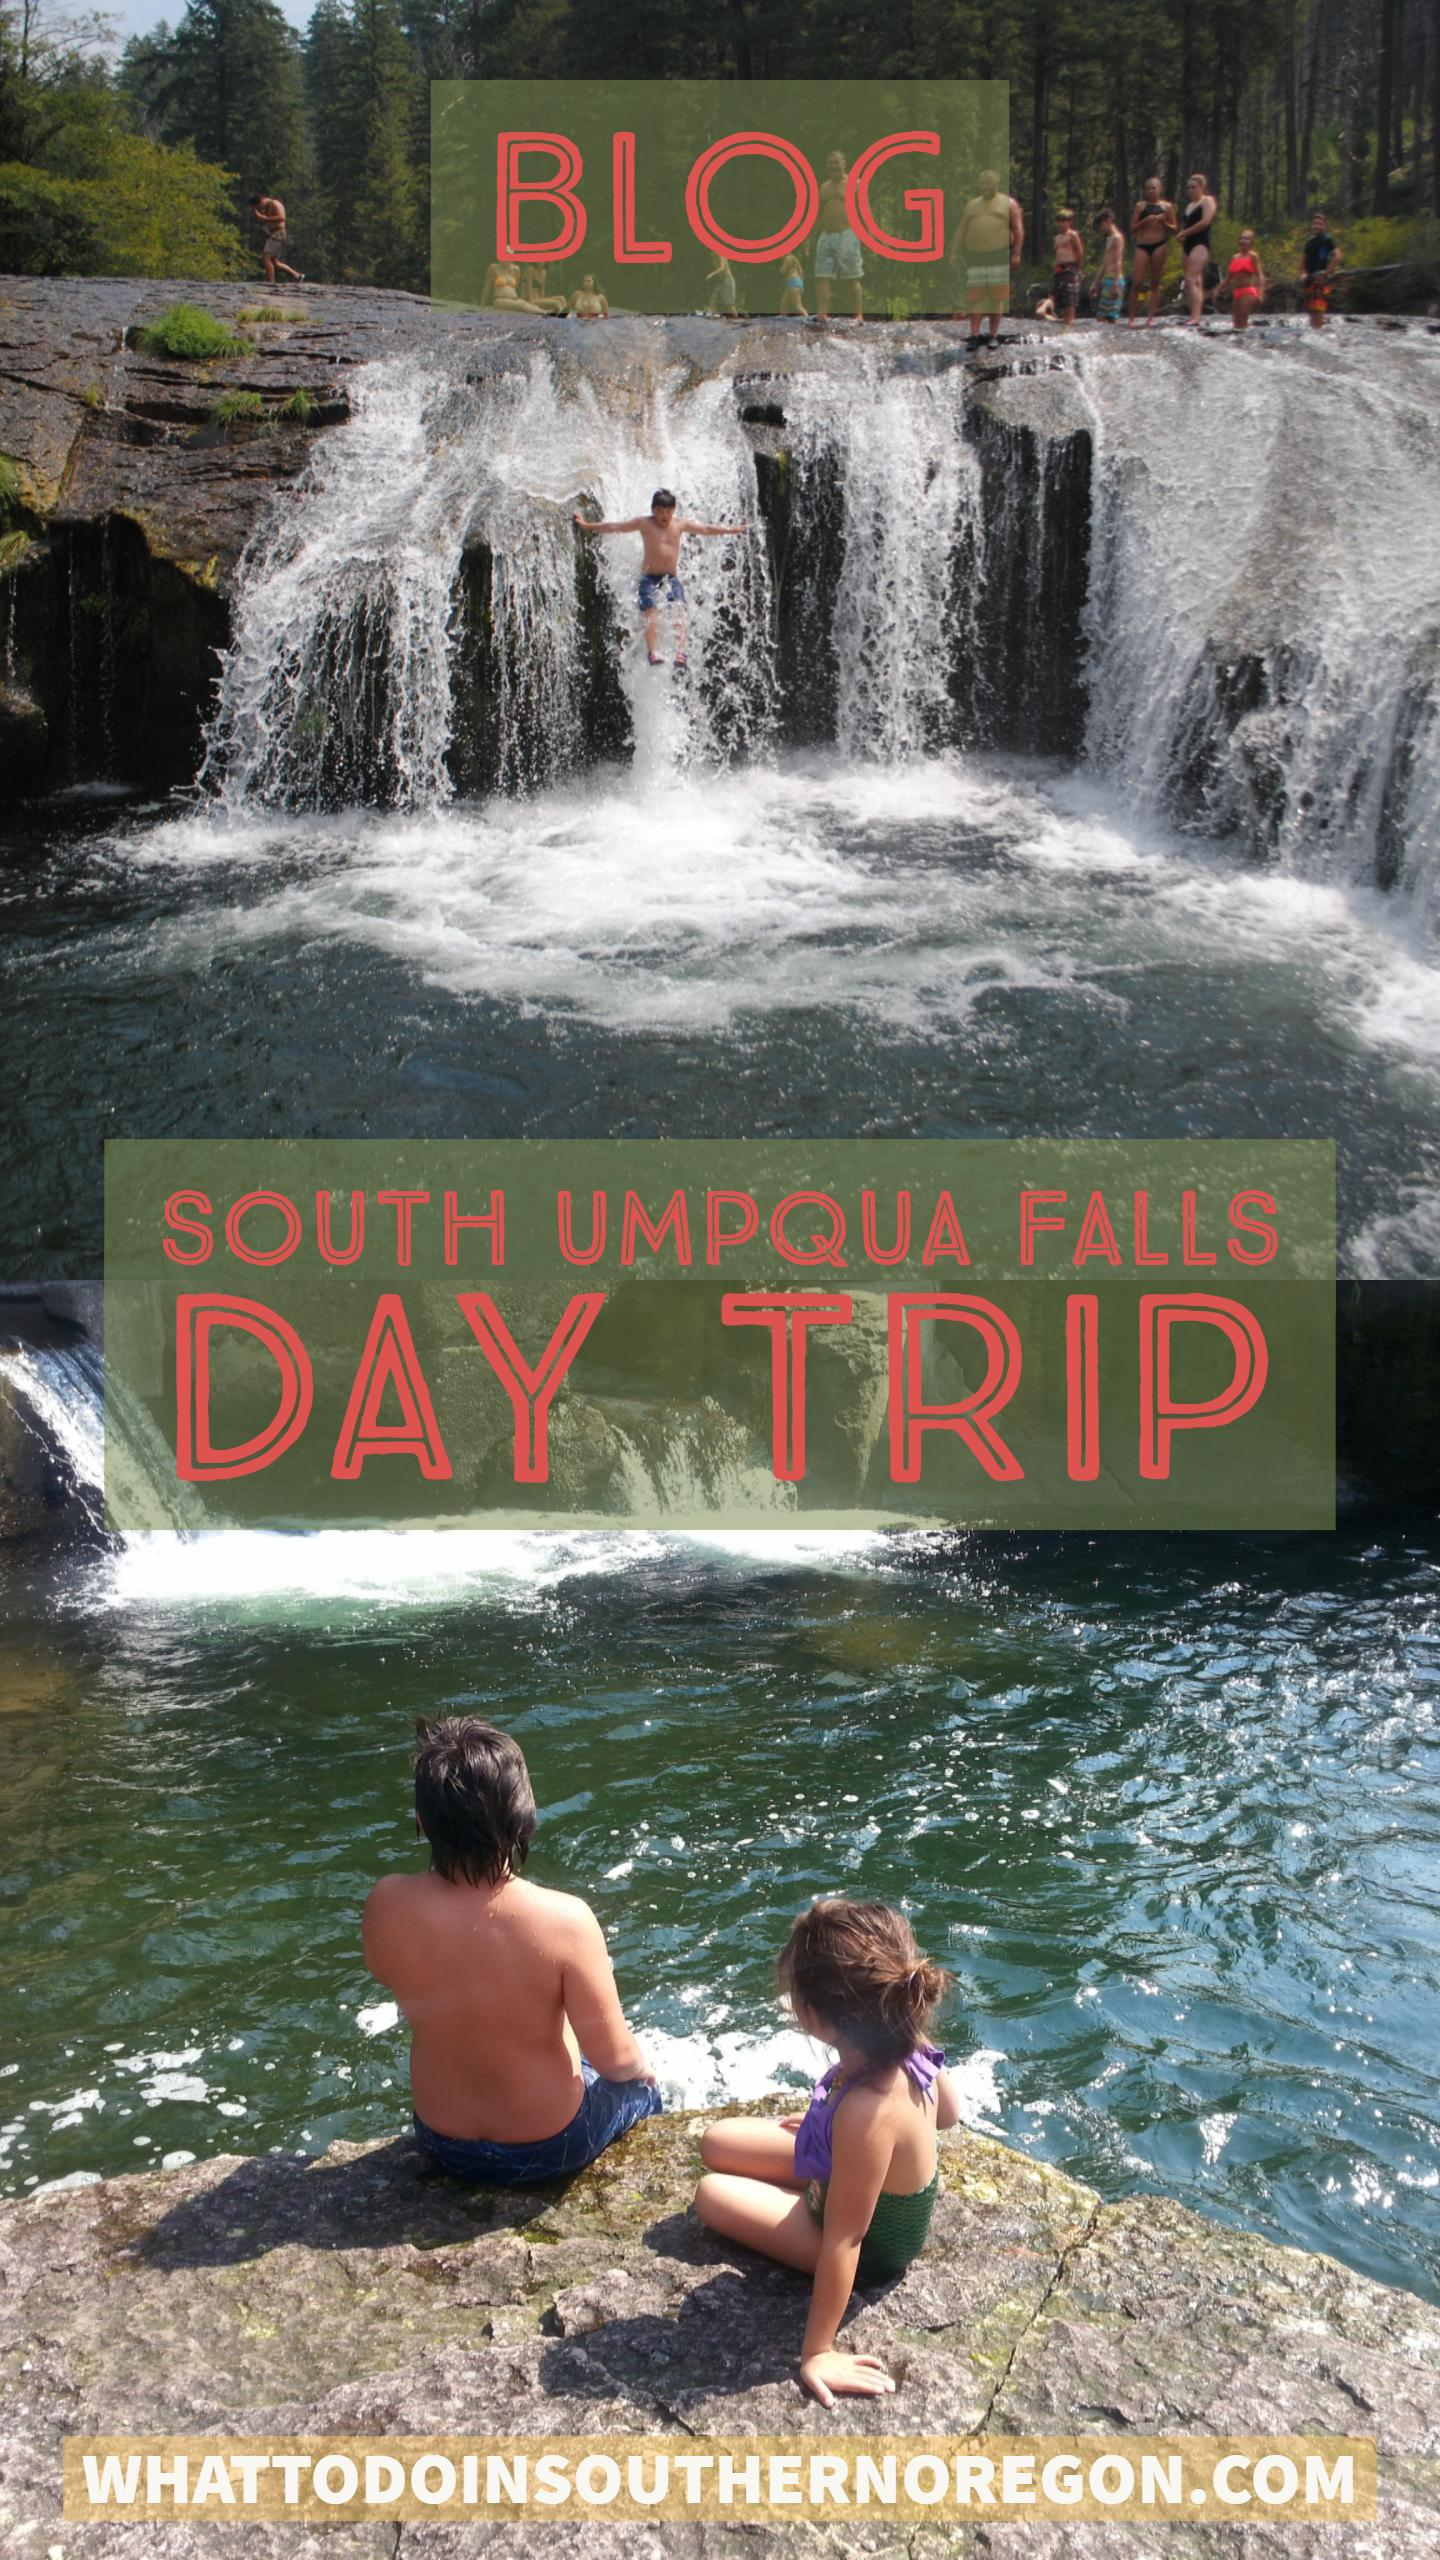 SOUTH UMPQUA FALLS NATURAL WATER SLIDES - What to do in Southern Oregon - Kids Fun - Outdoor Adventures